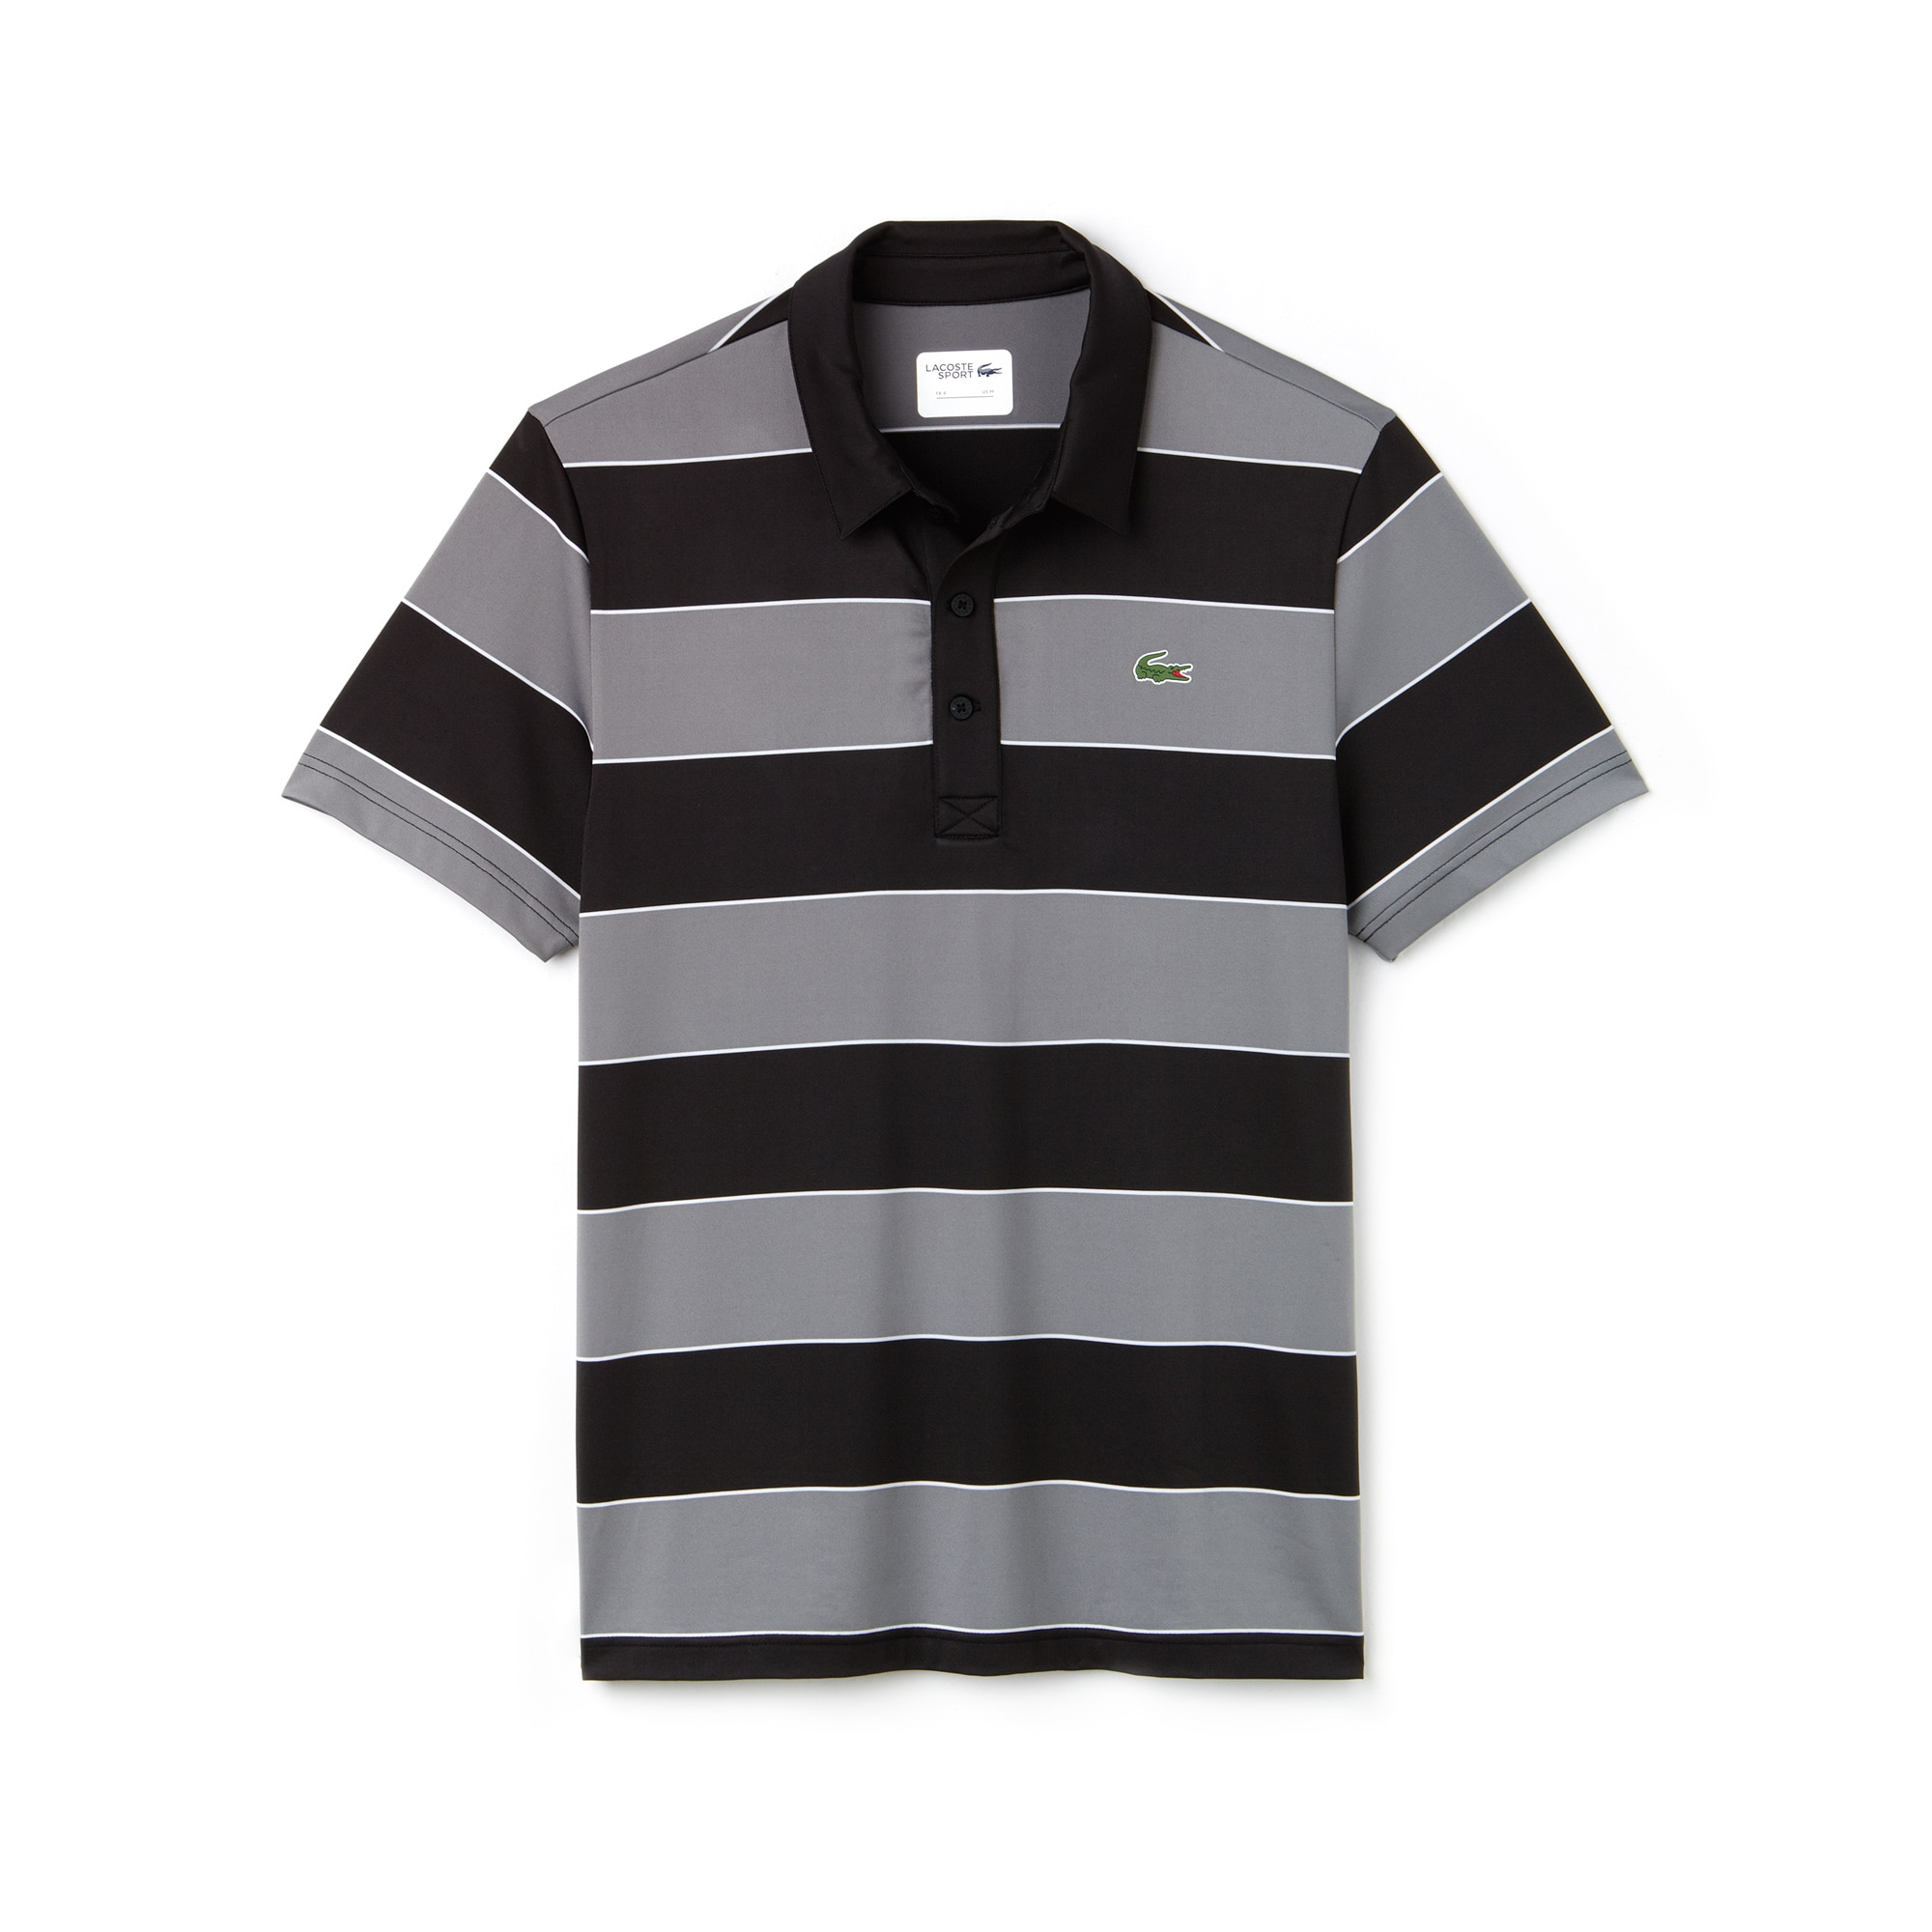 Men's SPORT Striped Stretch Jersey Golf Polo